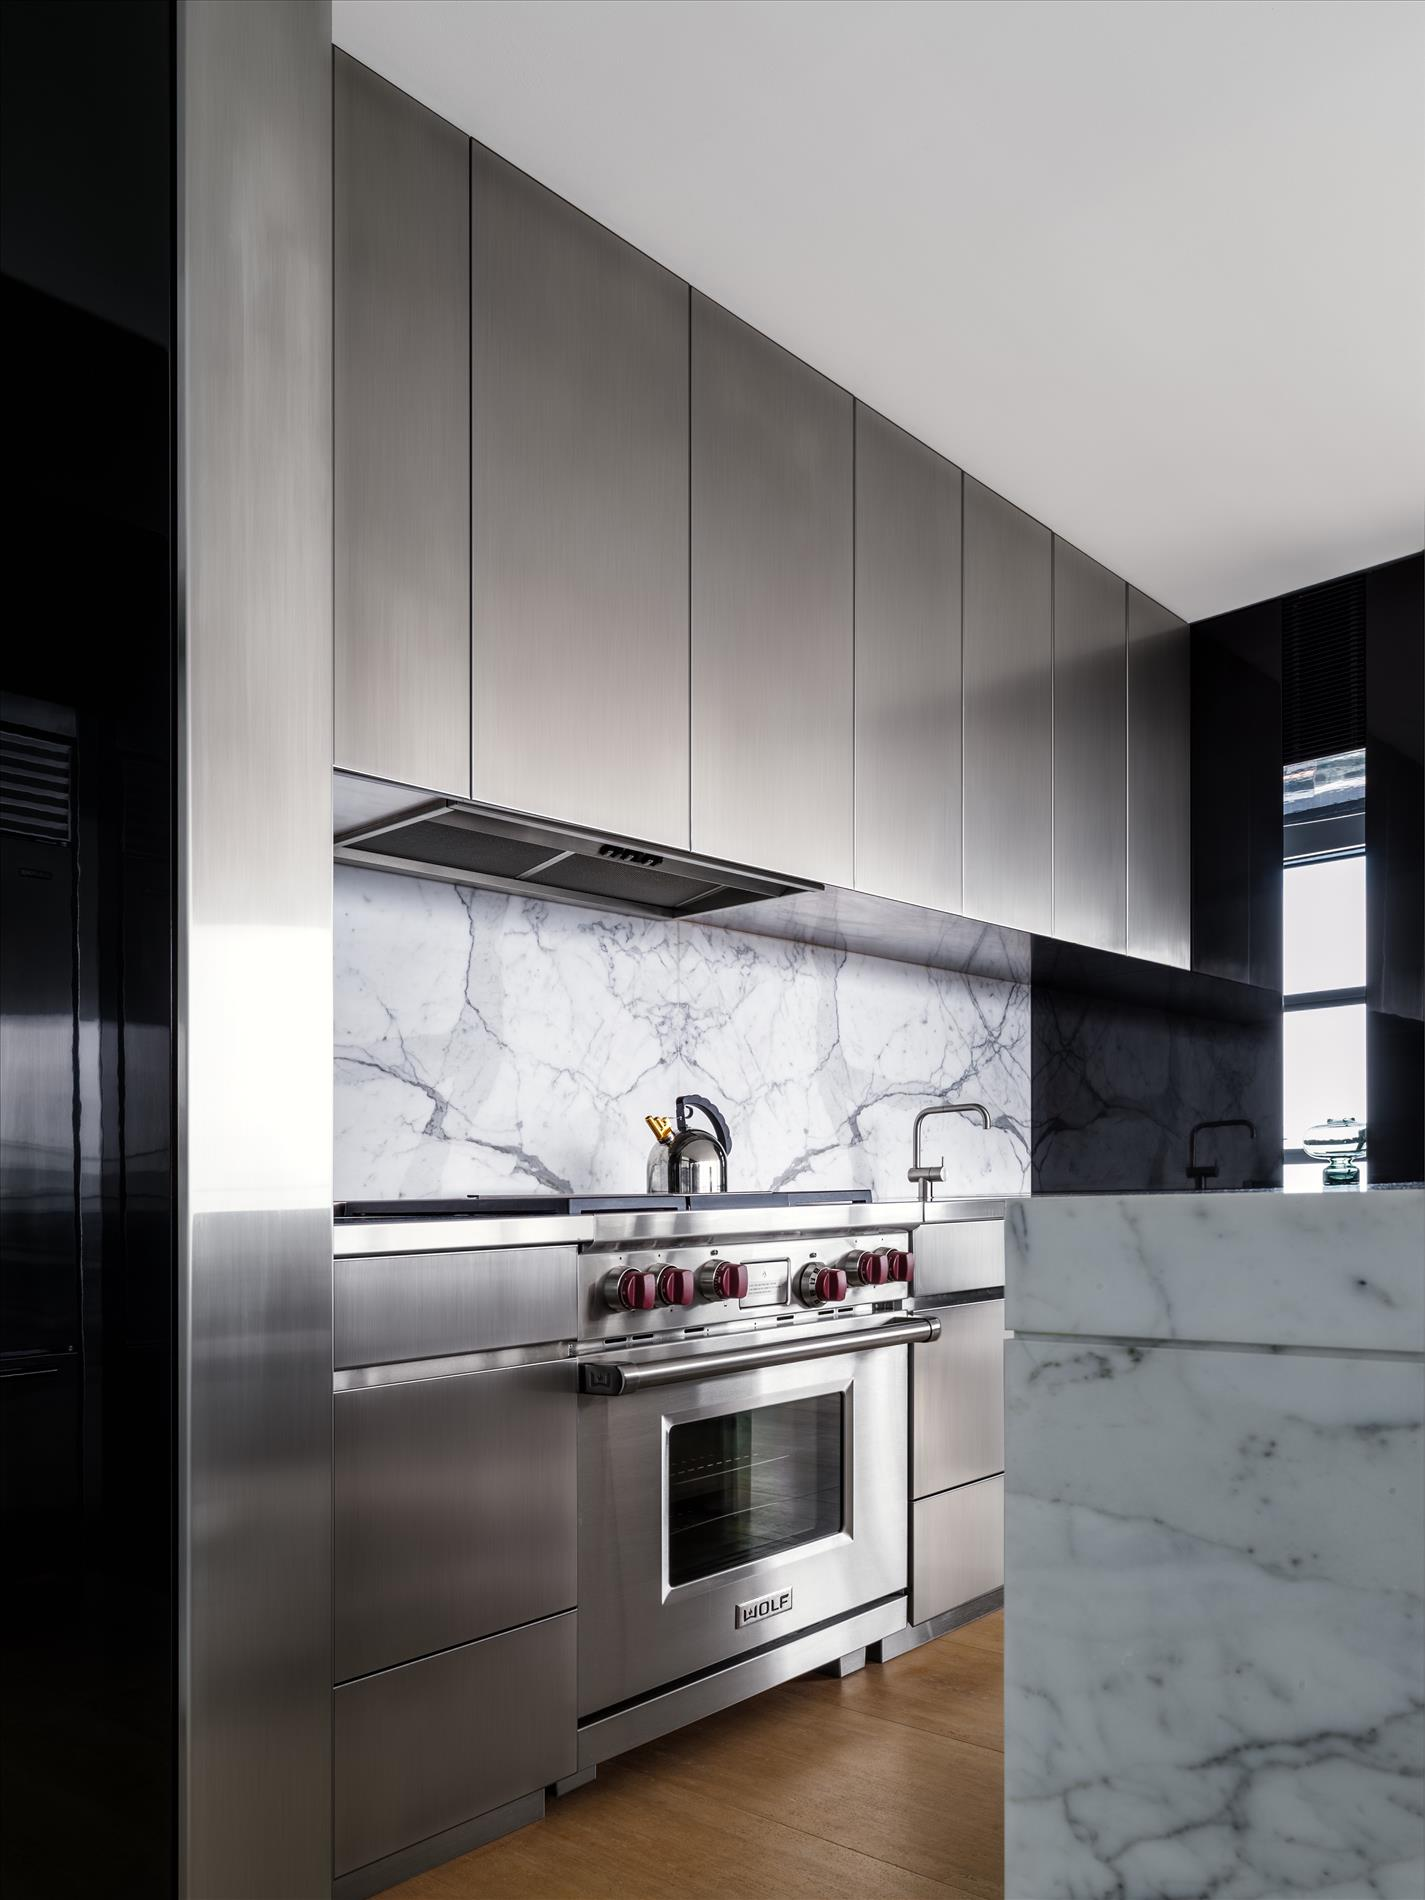 Calacatta marble and reflective surfaces round out the material palette.